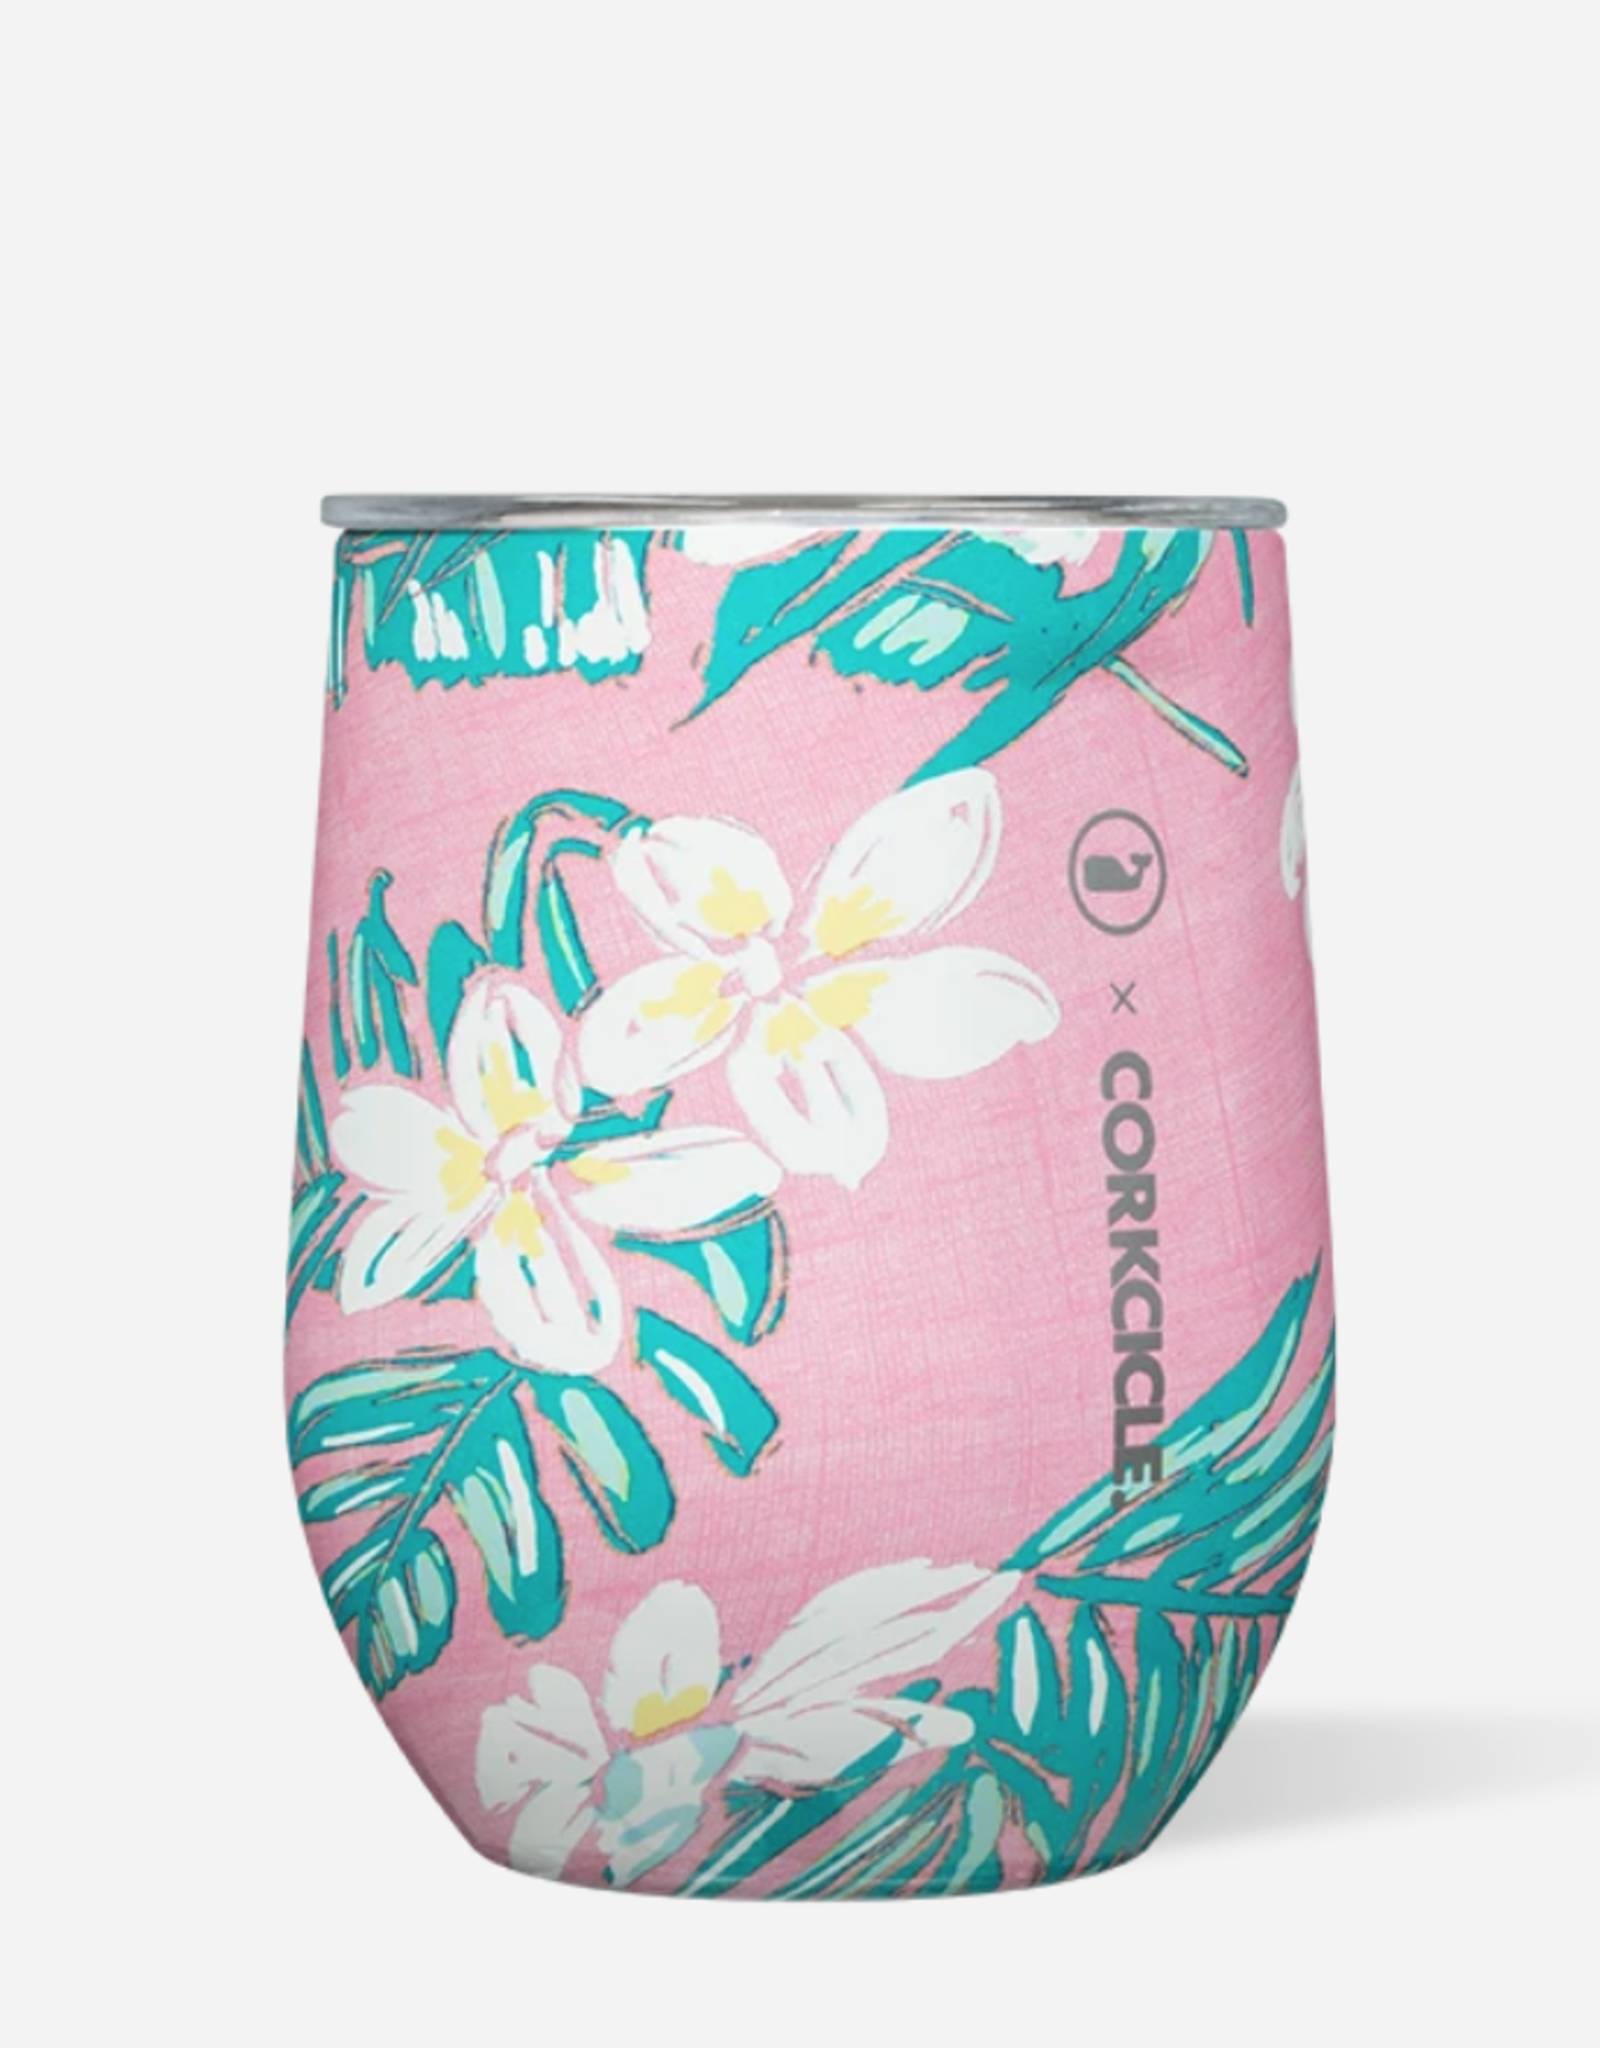 Corkcicle Corkcicle - 12oz Stemless - Vineyard Vines Pink Tropical Flowers